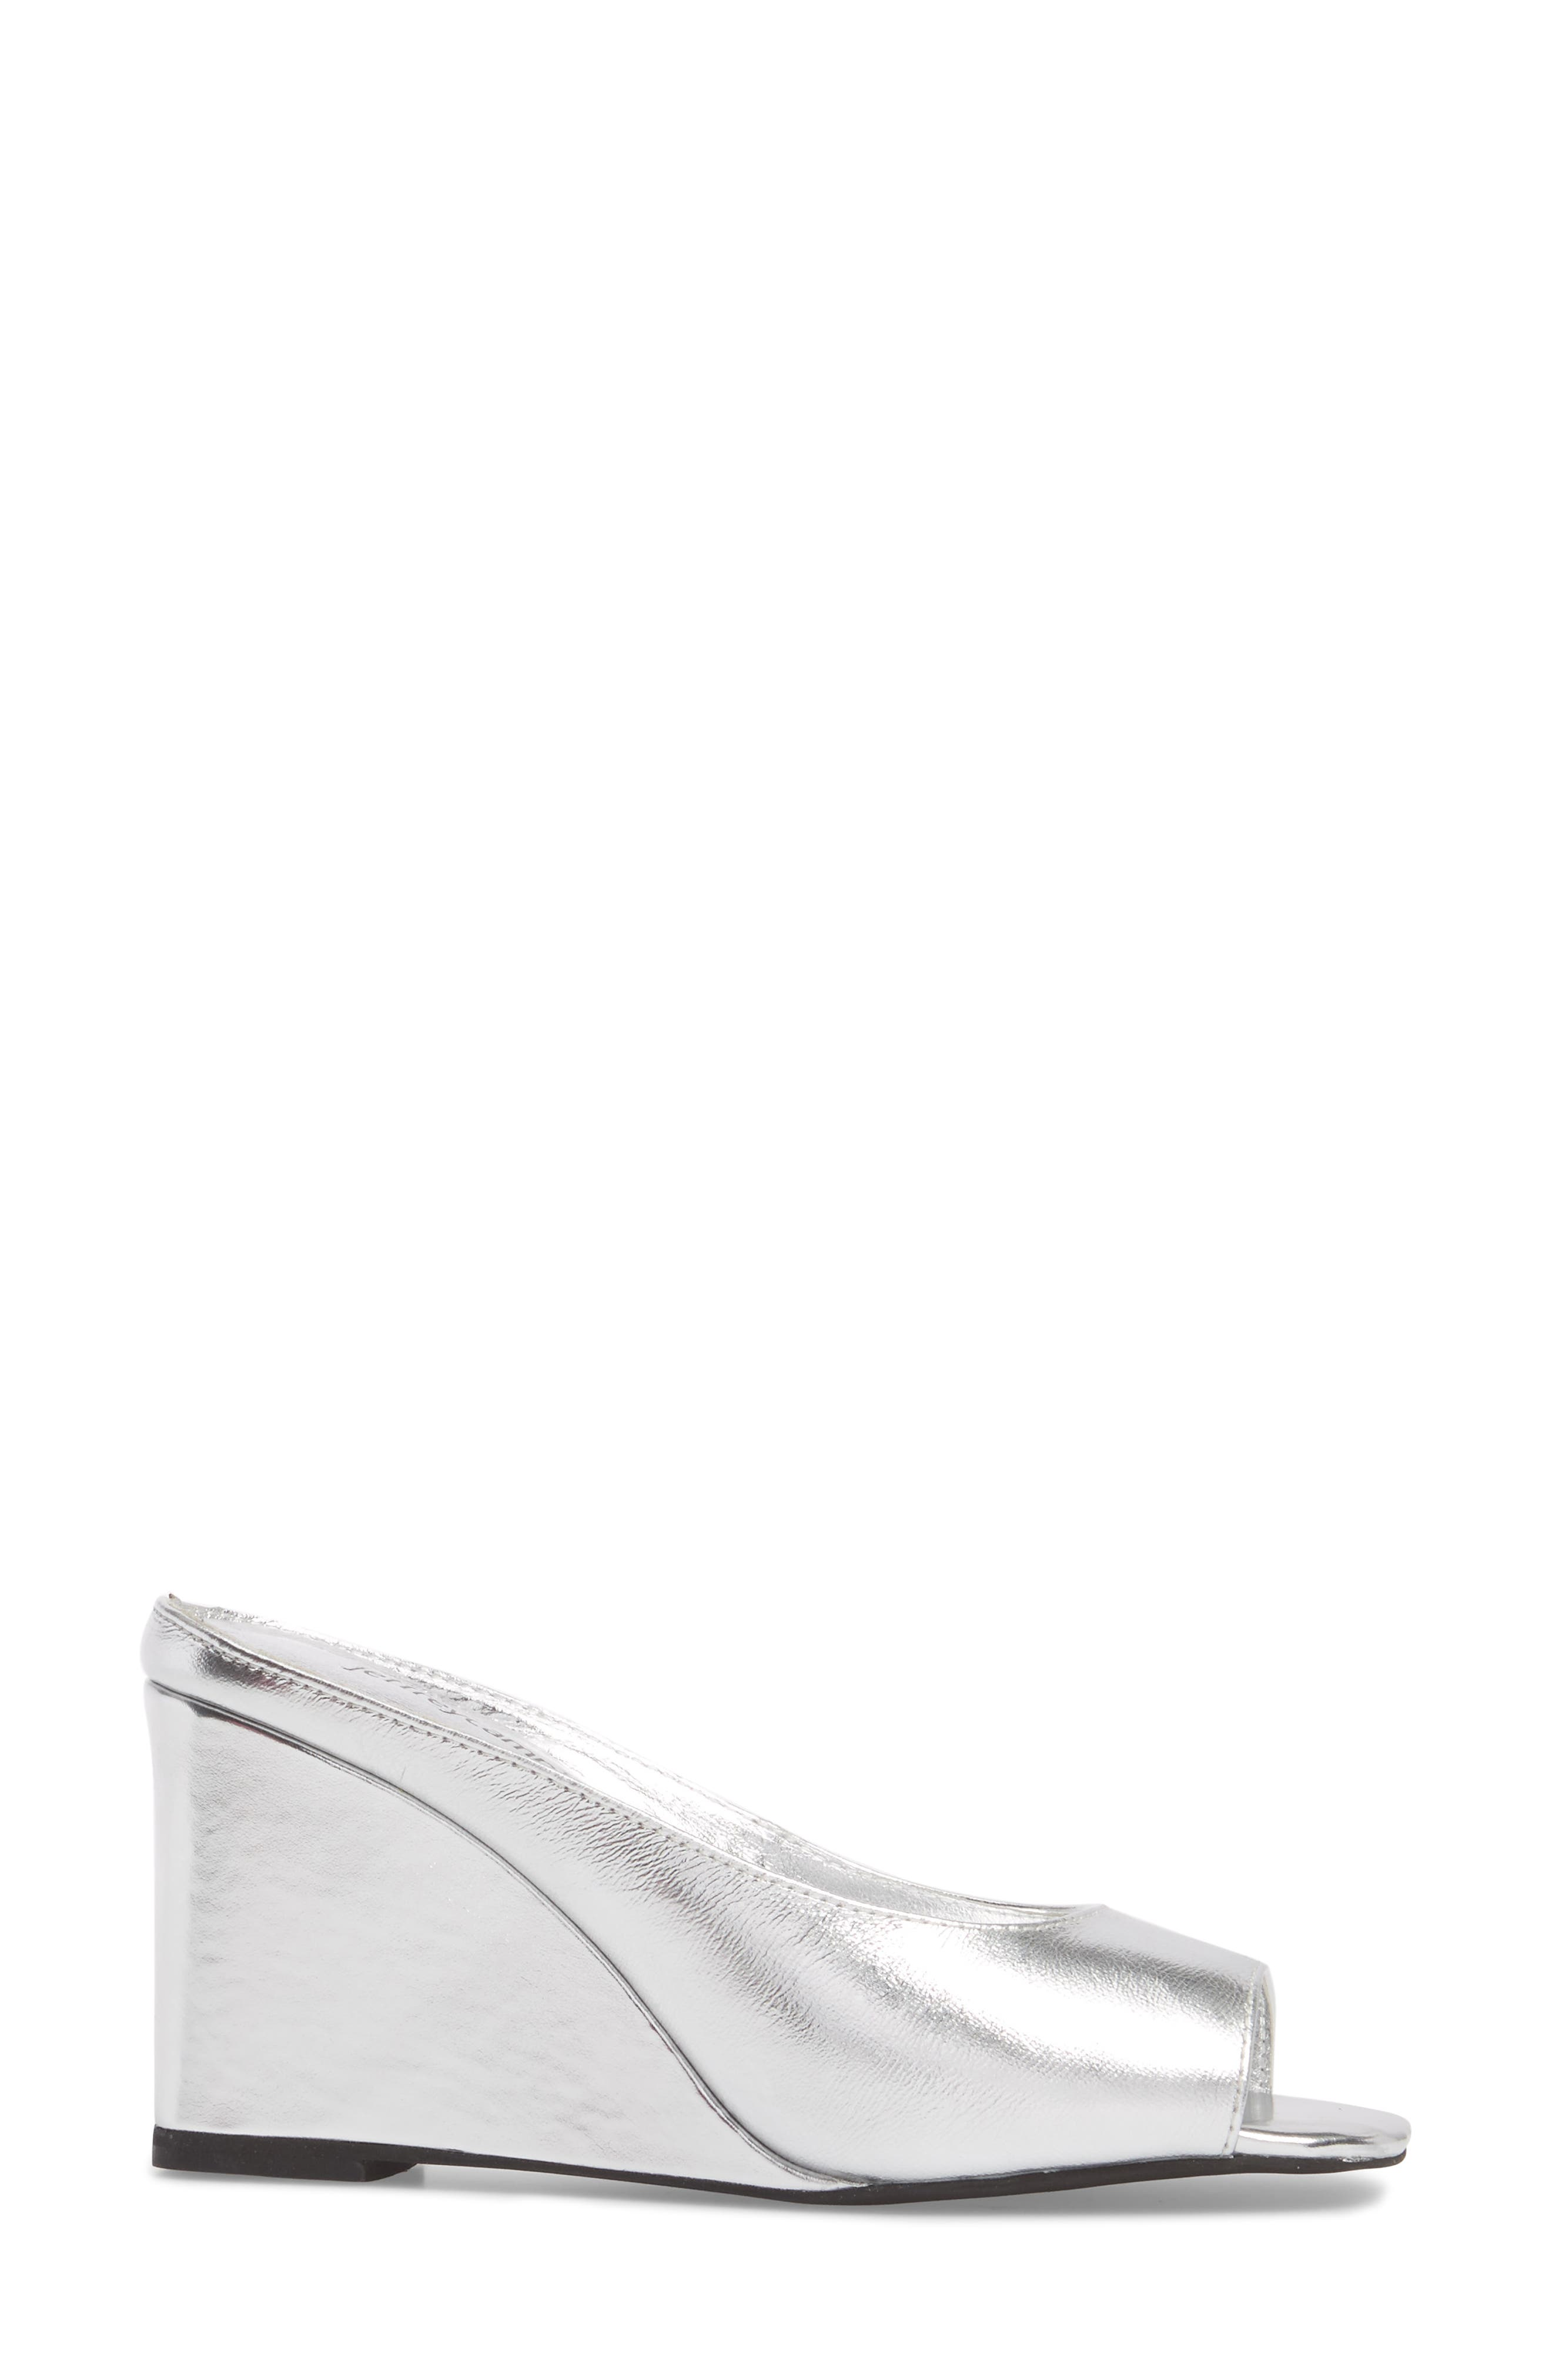 Generous Wedge Sandal,                             Alternate thumbnail 3, color,                             Silver Leather